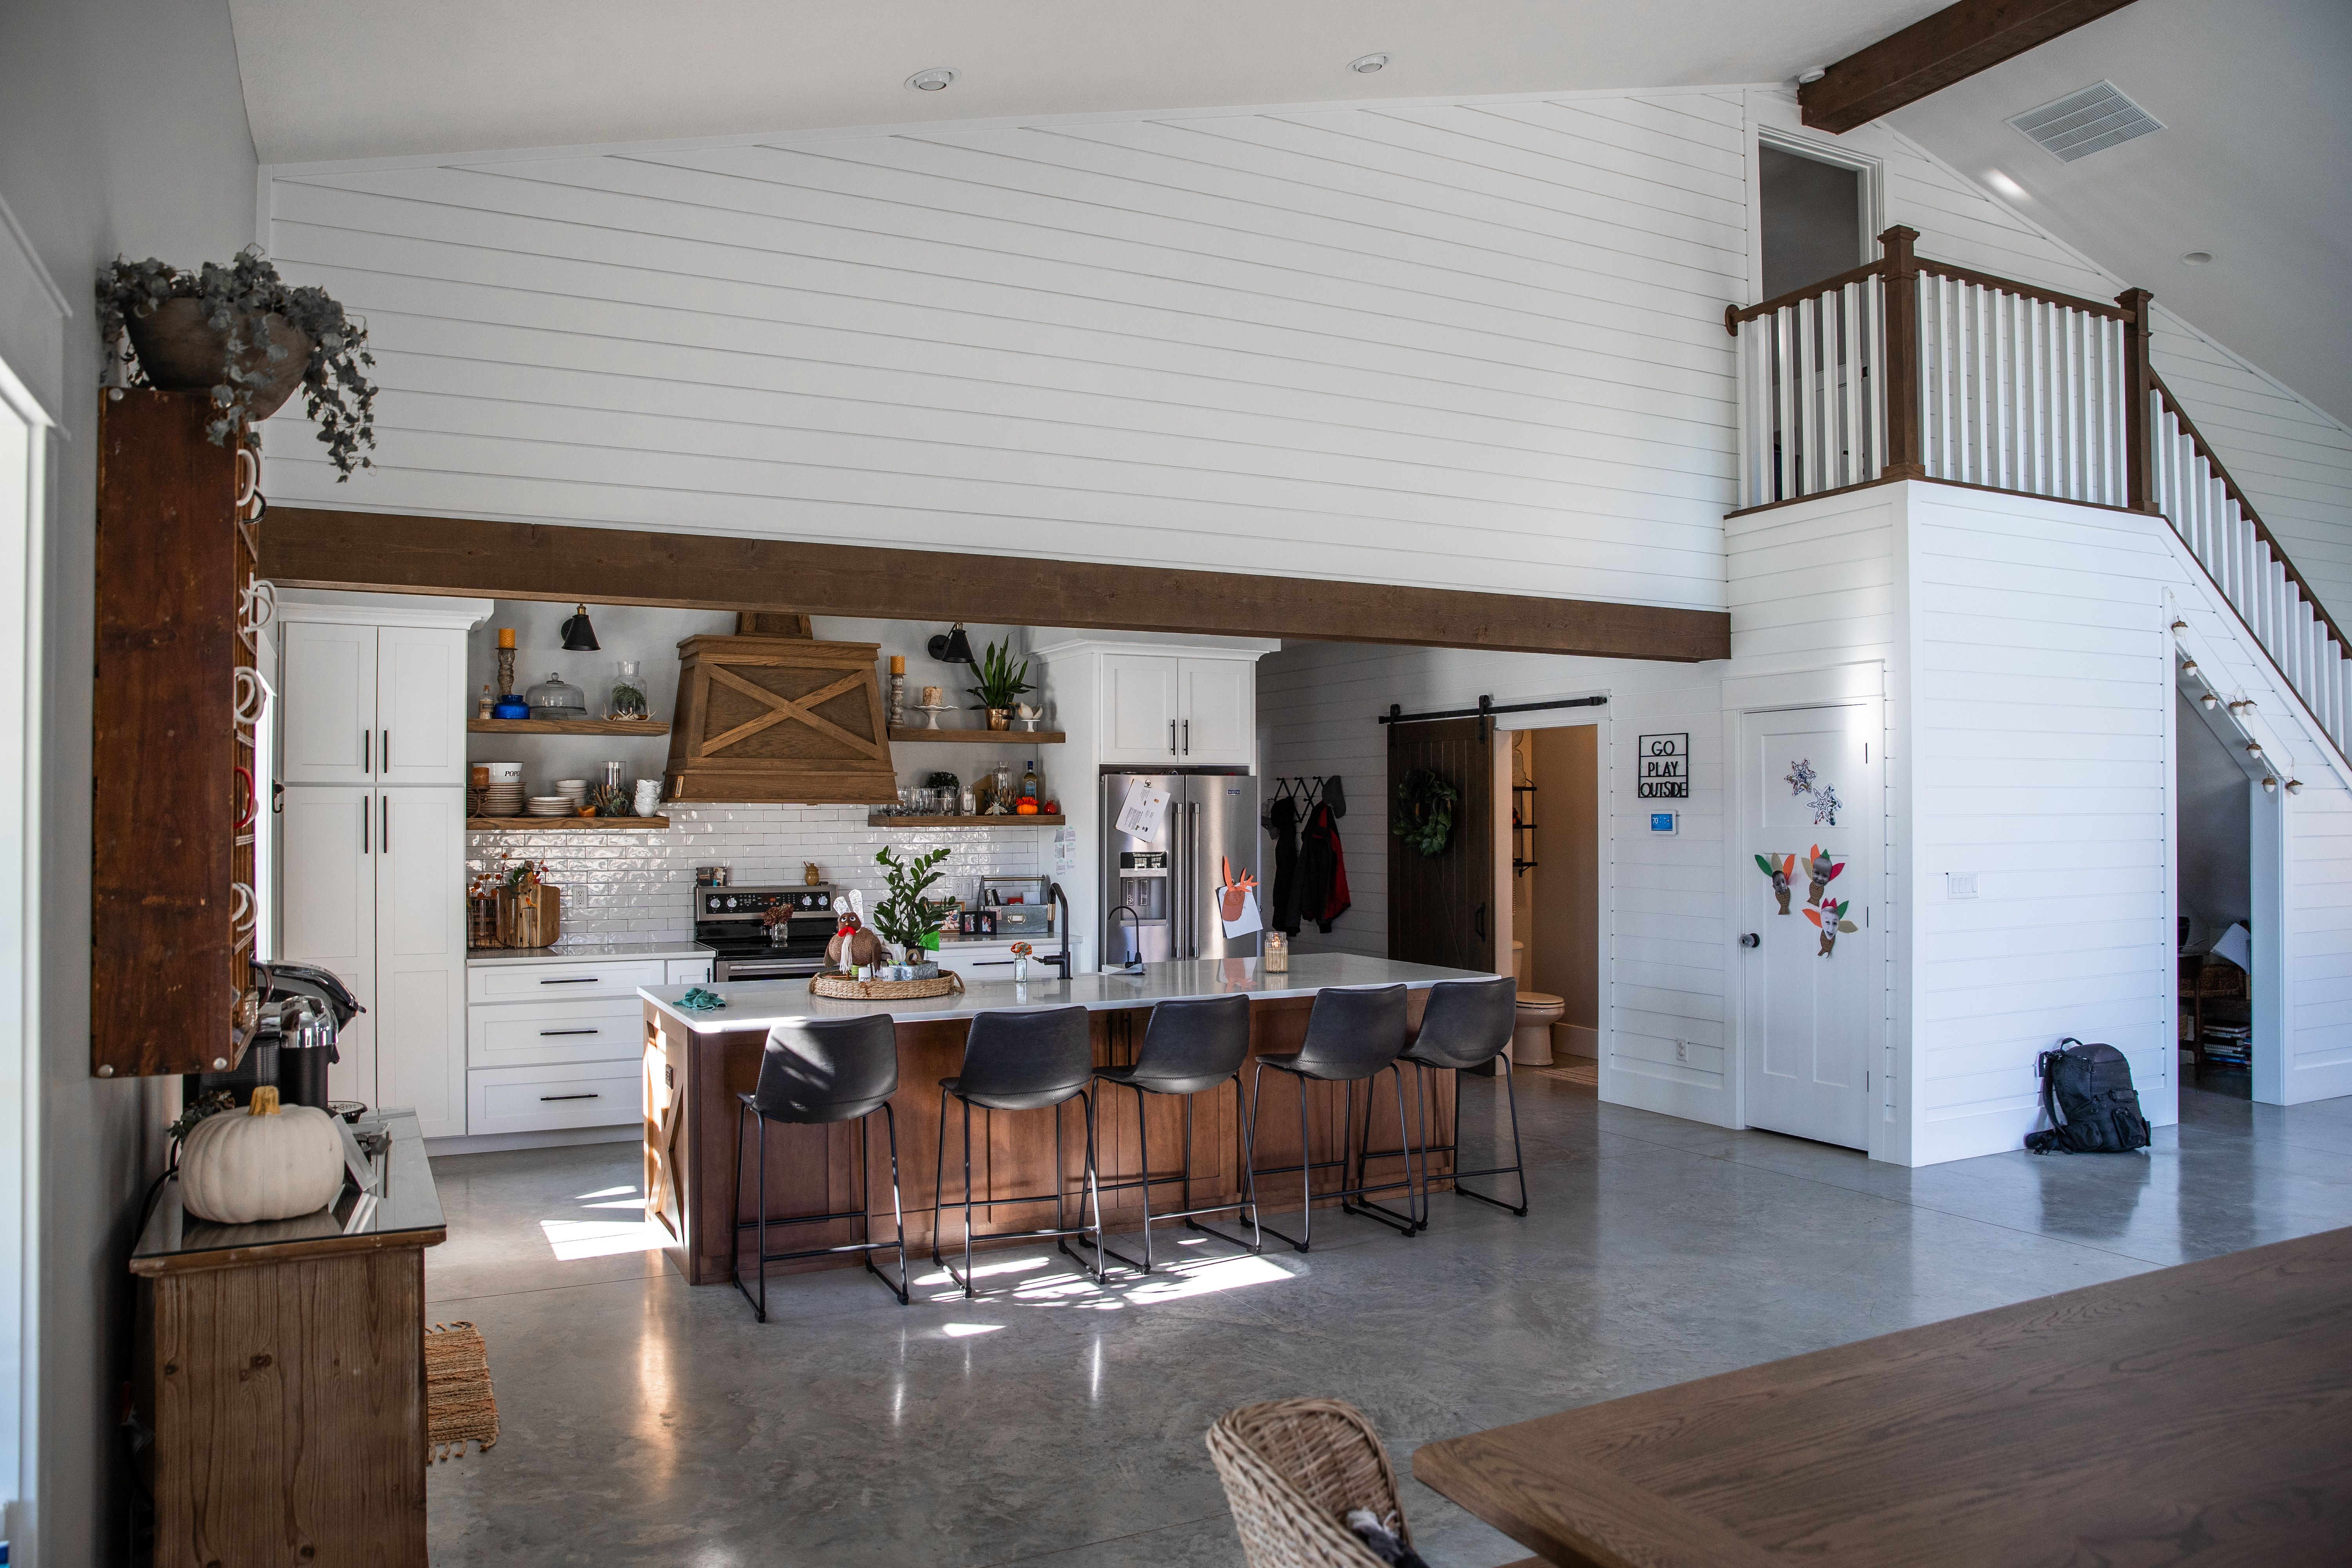 5 Ways To Finish The Interior Of Your Pole Barn In 2020 Barn